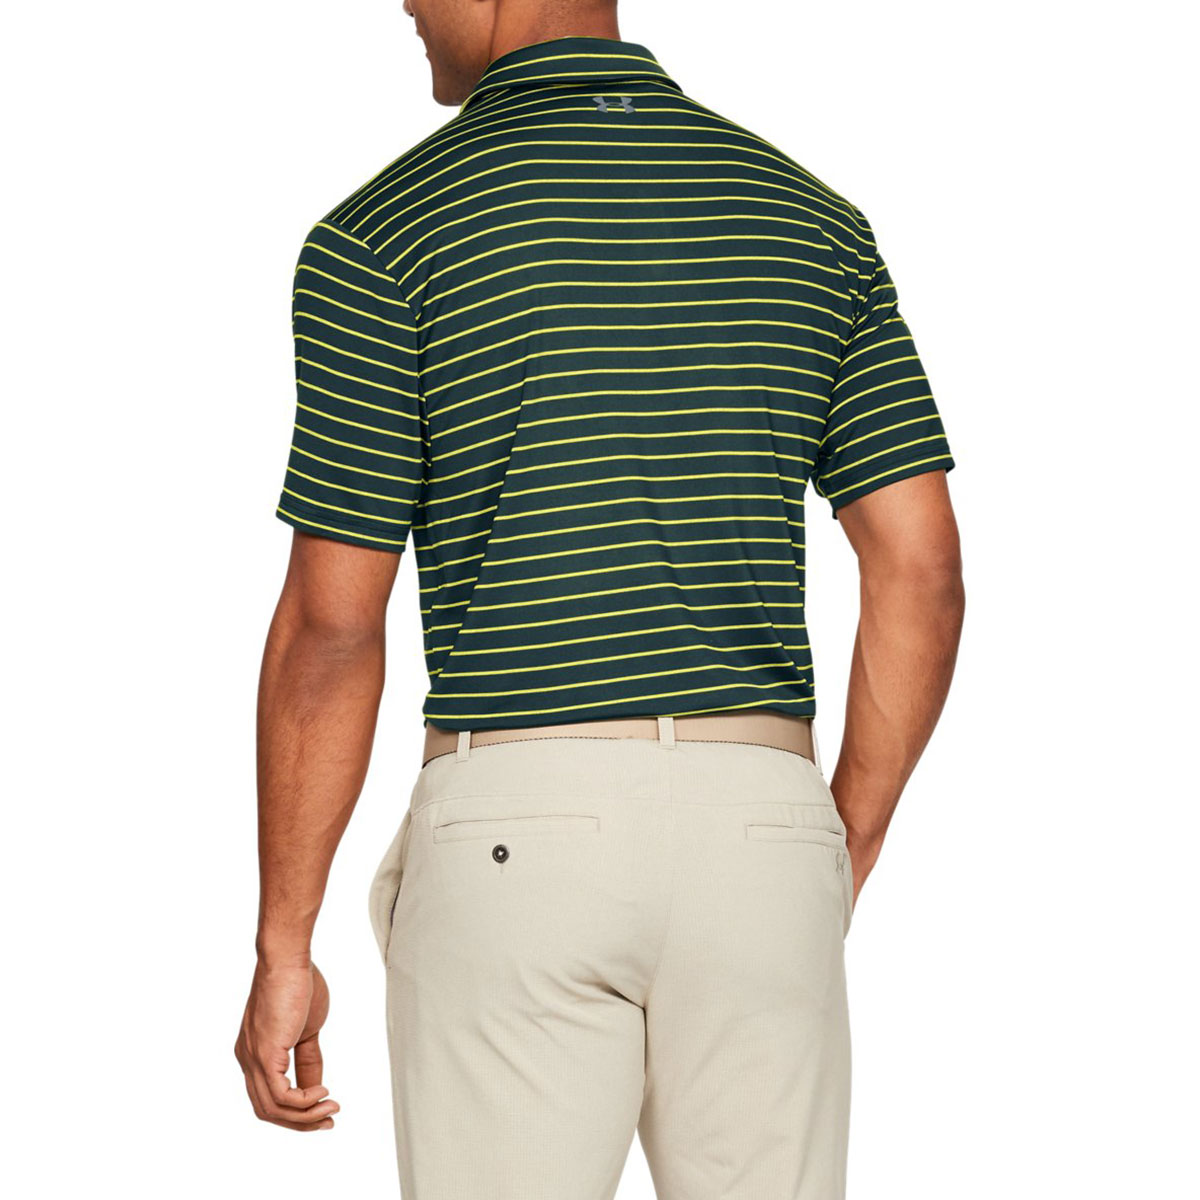 Under-Armour-Mens-2019-Playoff-Polo-2-0-Breathable-Light-Stretch-Polo-Shirt thumbnail 35